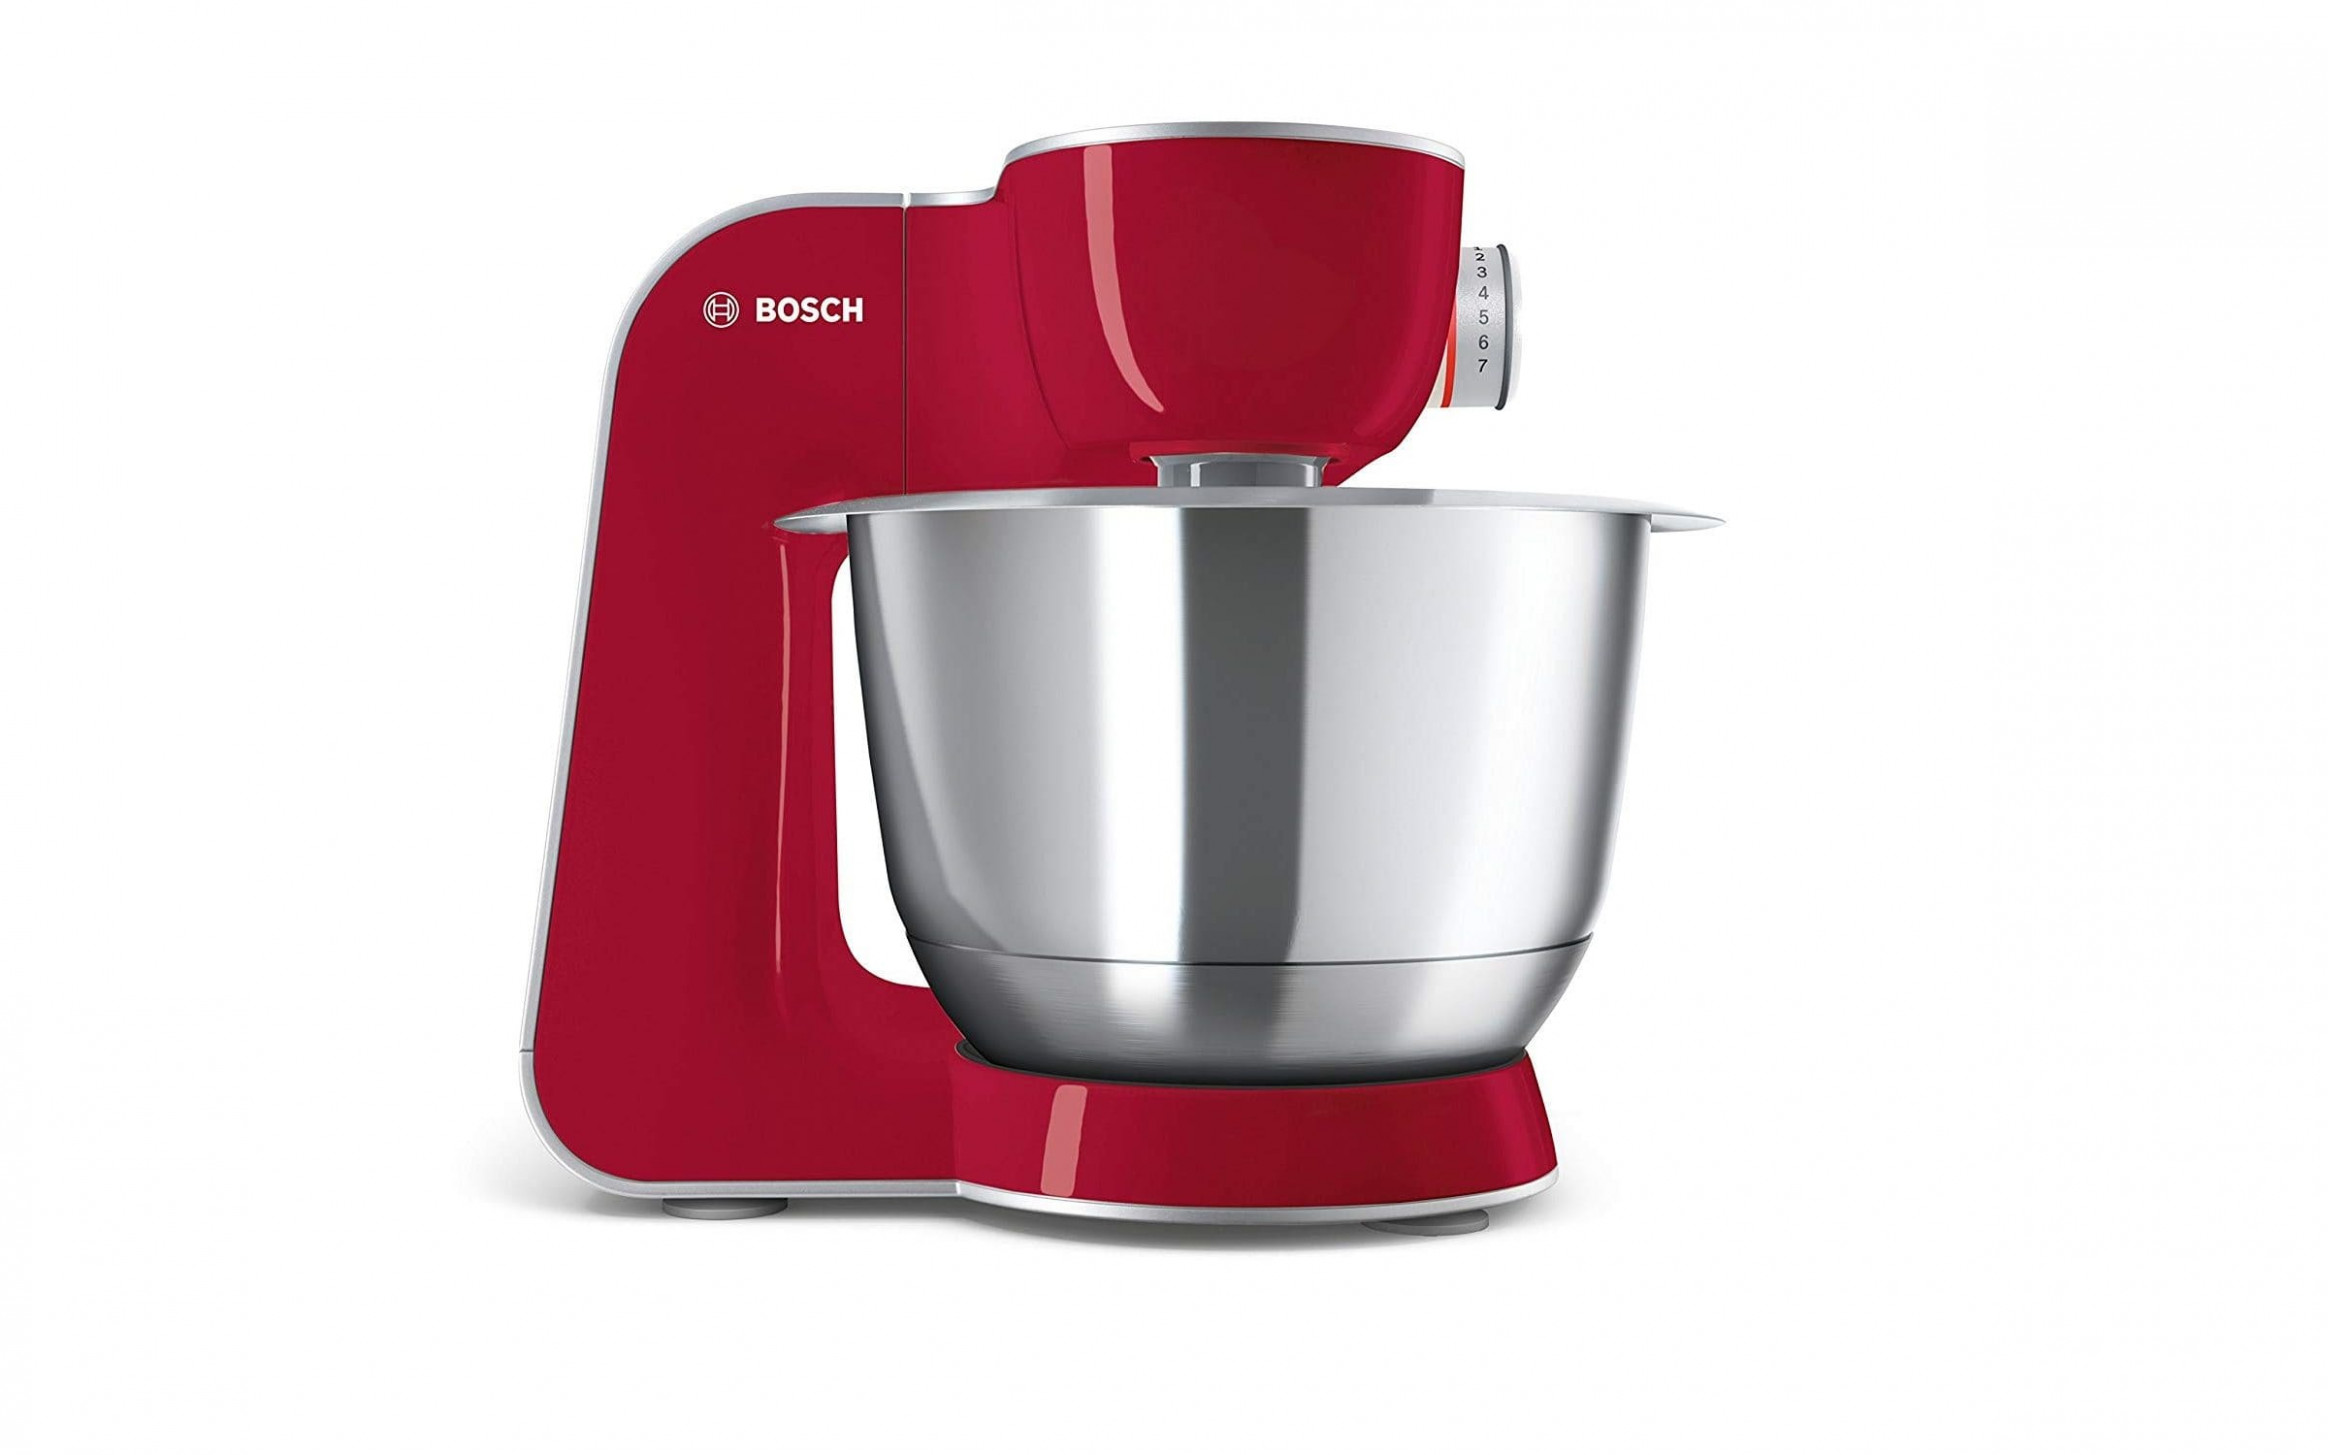 10 Of The Best Food Processors To Buy - Recipes Magimix Food Processor